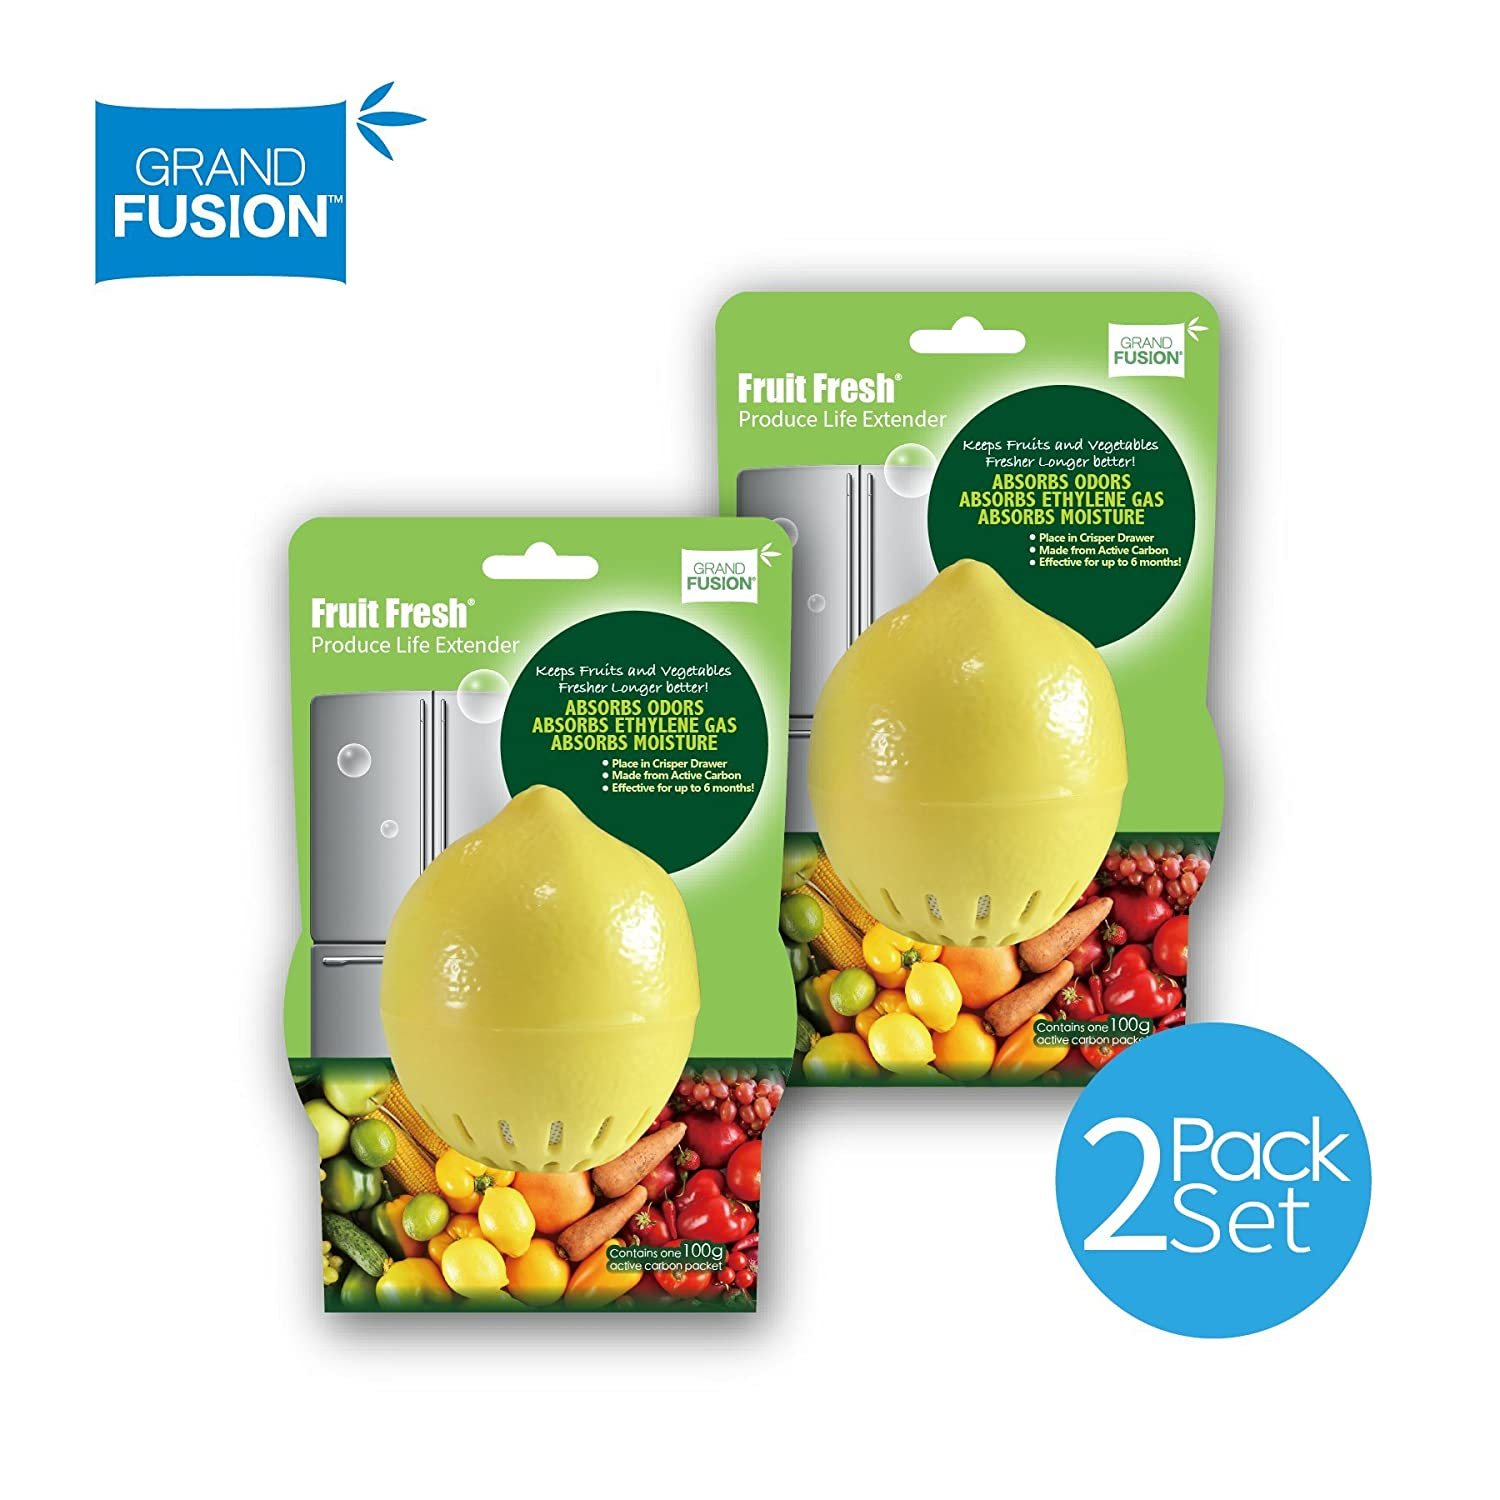 Fruit Fresh Produce Life Extender 2 Pack Set - Keeps Fruit and Vegetables Fresh Longer in the Refrigerator, Removes Odor & Moisture